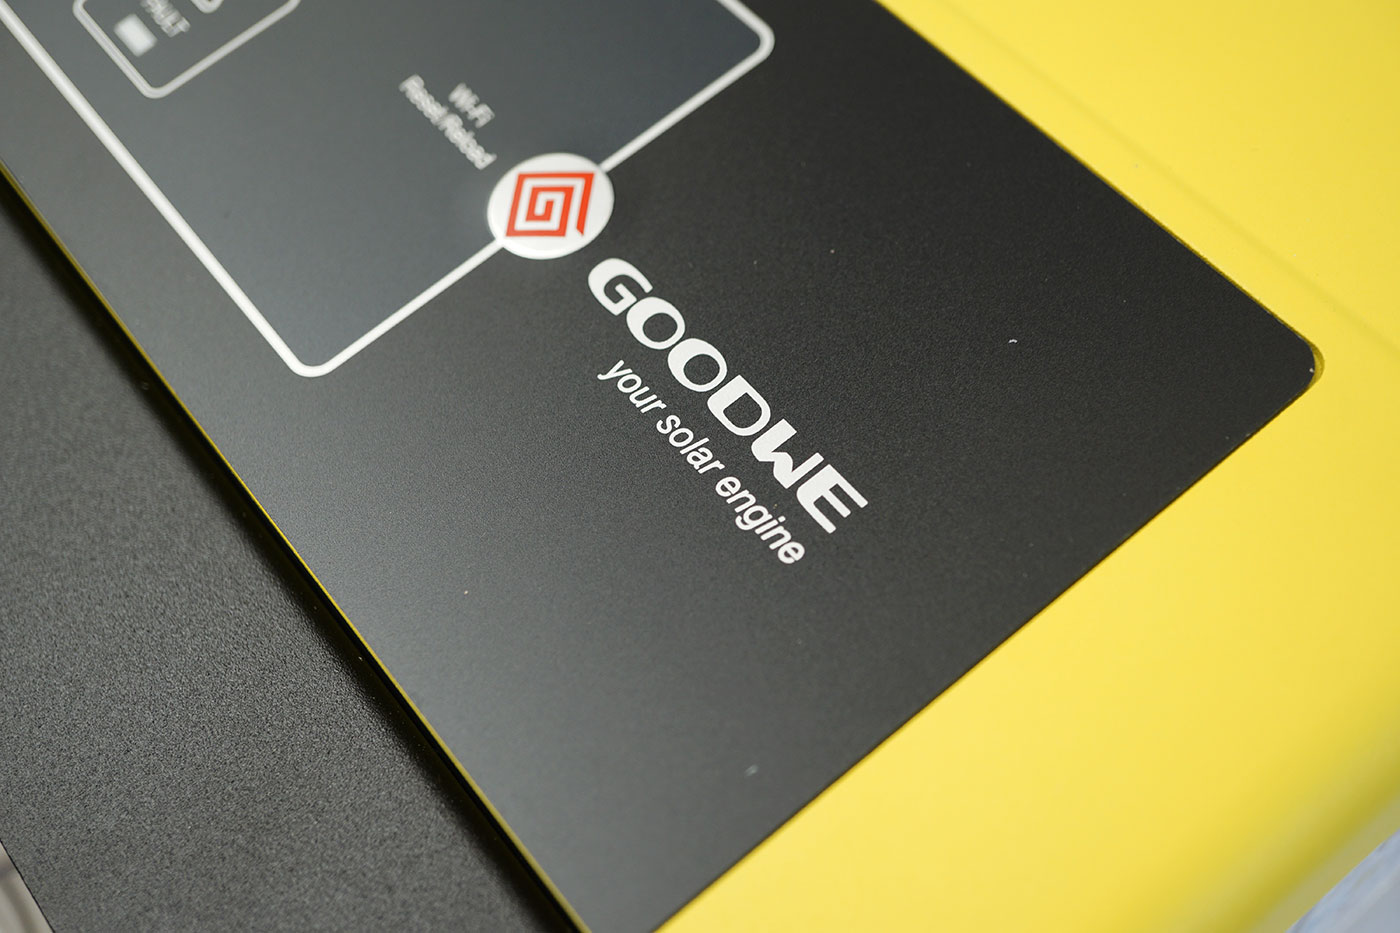 Review Goodwe Em Hybrid 3 7 5 Kw Updated